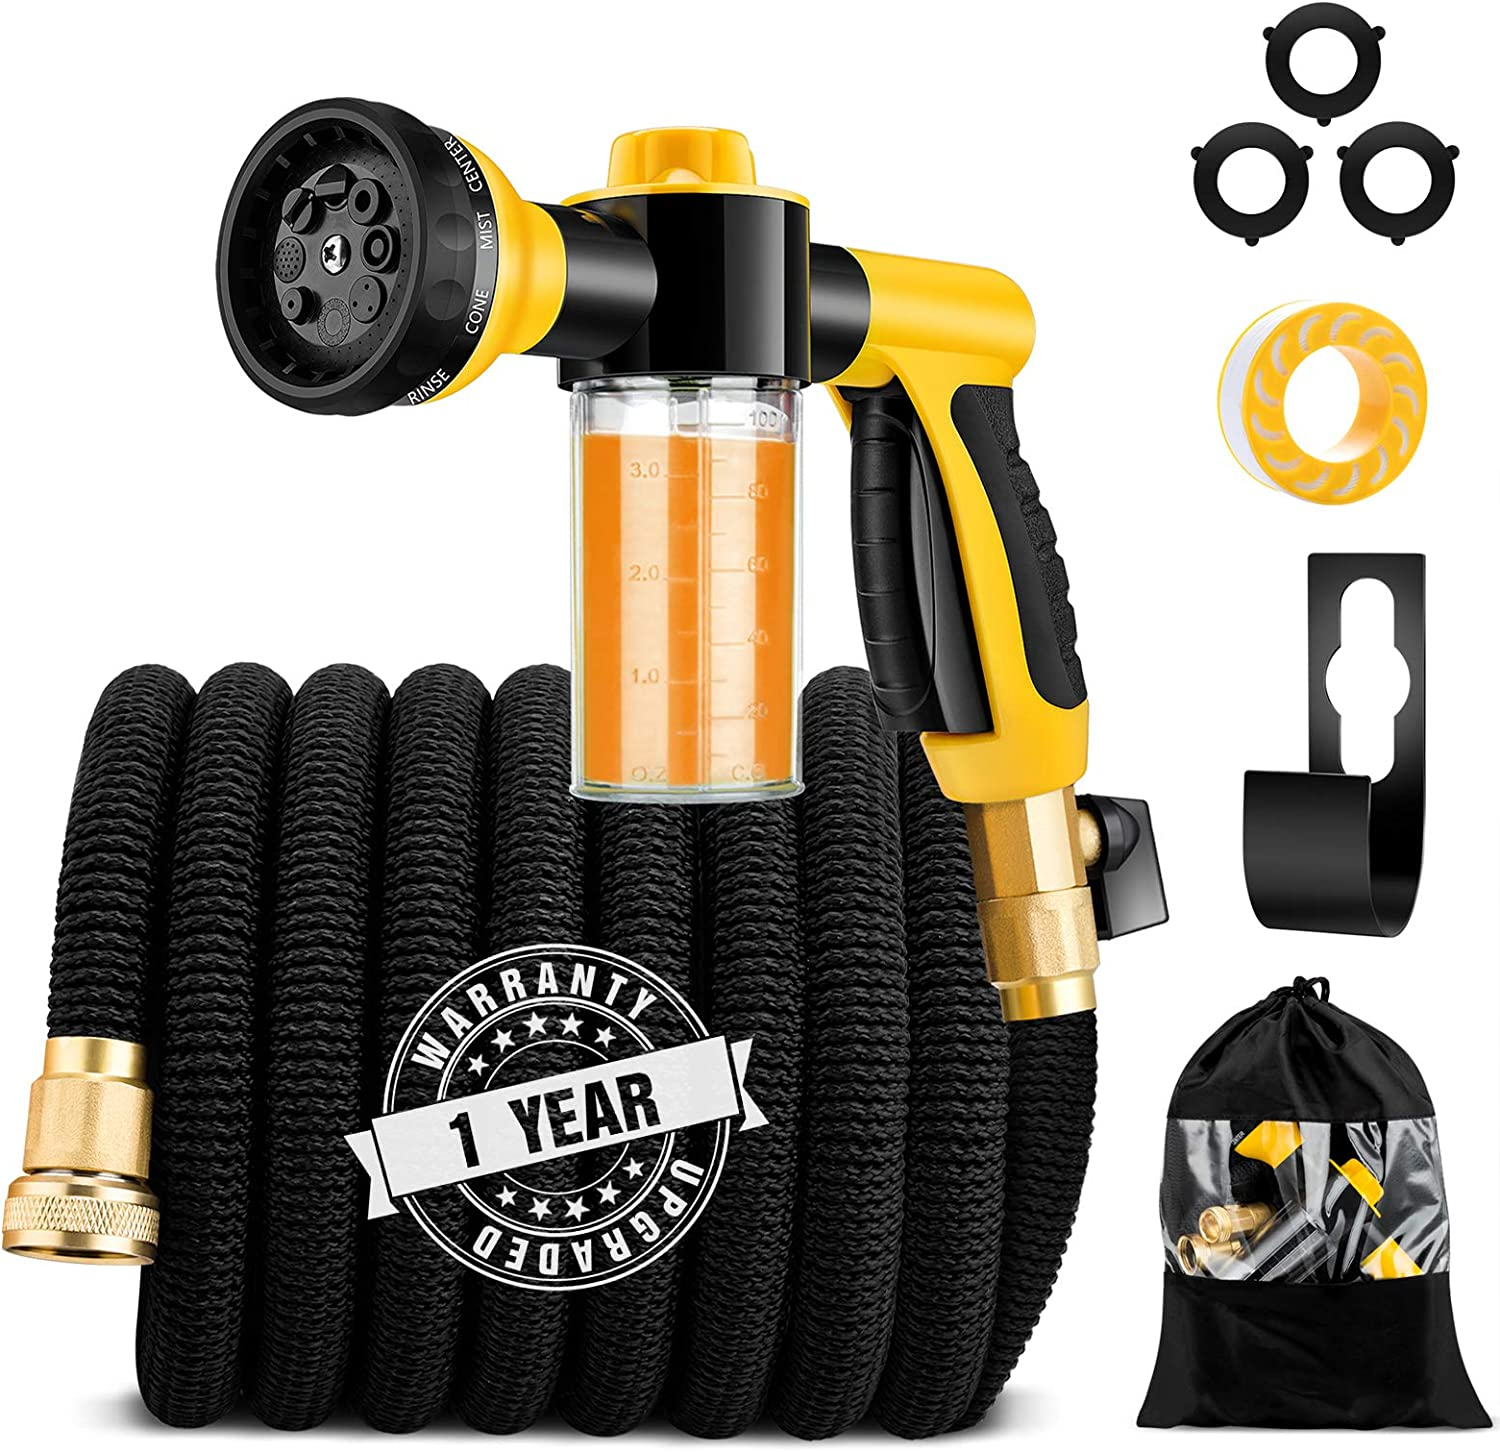 "50ft Expandable Garden Hose, Kink Free Leakproof Water Hose with Soap Dispenser Bottle and 8 Function Spray Nozzle, Flexible Hose with Double Latex Core and Super Strength 3/4"" Solid Brass Connector"